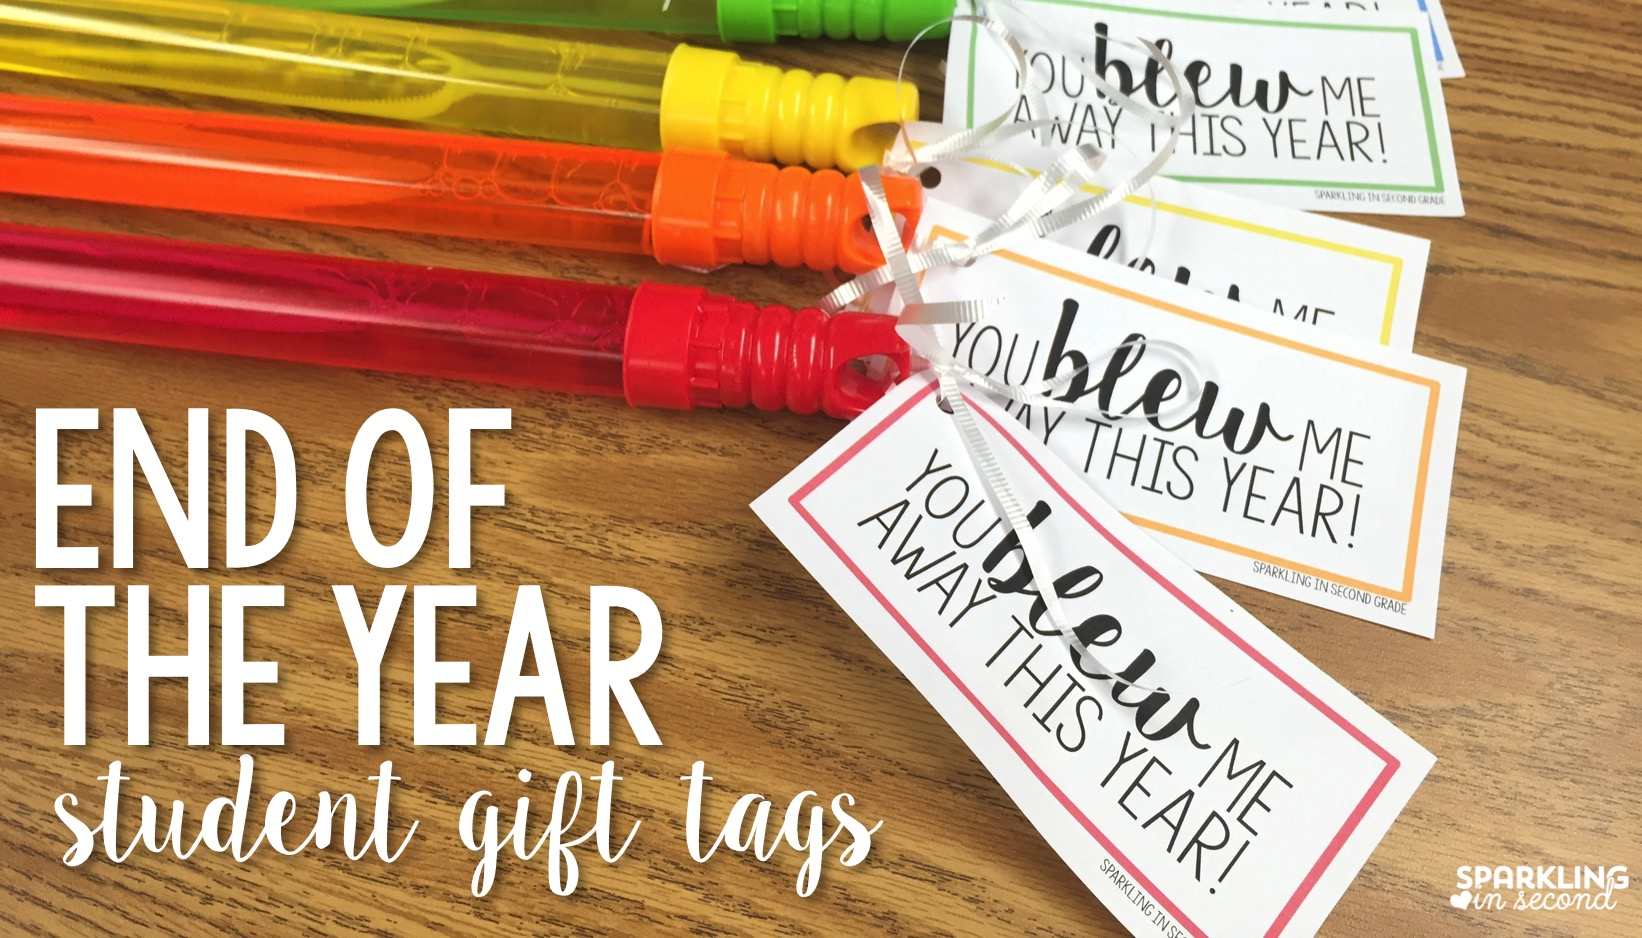 photo relating to You Blew Me Away This Year Free Printable called Close of Yr Present Bubble Tags - Glowing within Instant Quality